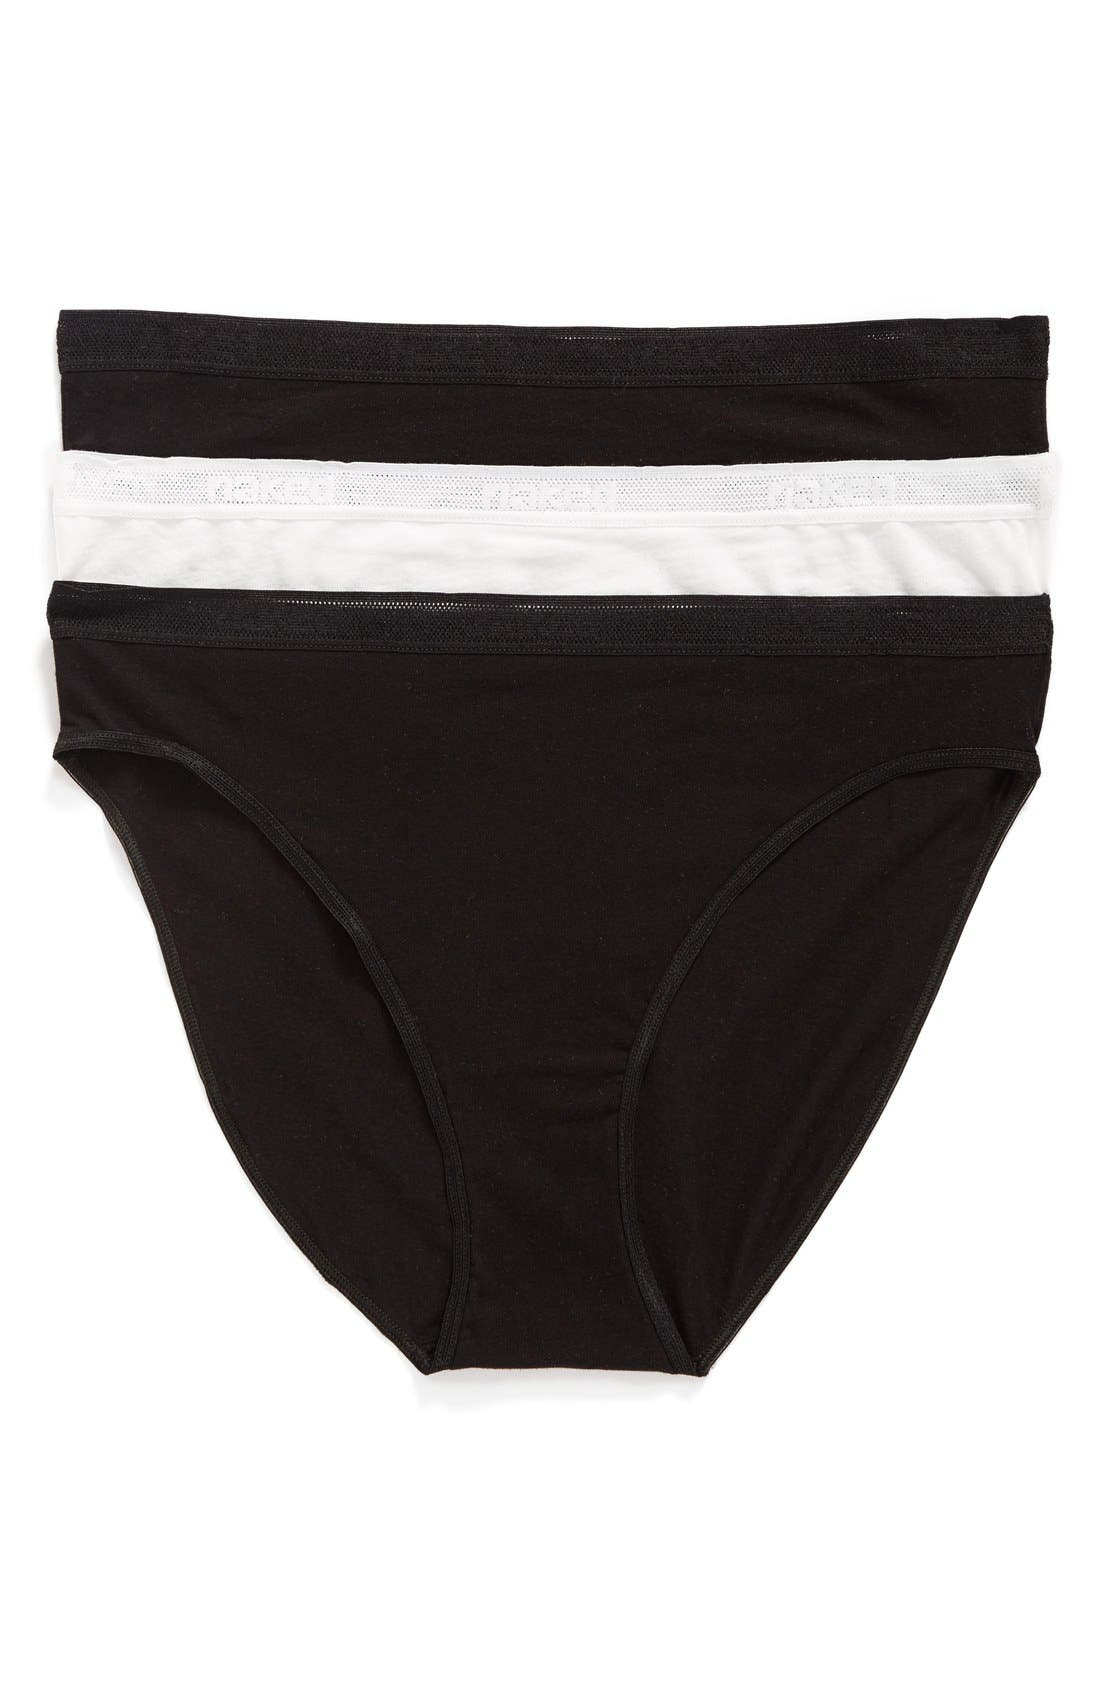 3-Pack Stretch Pima Cotton High Cut Panties,                         Main,                         color, Black/ Black/ White